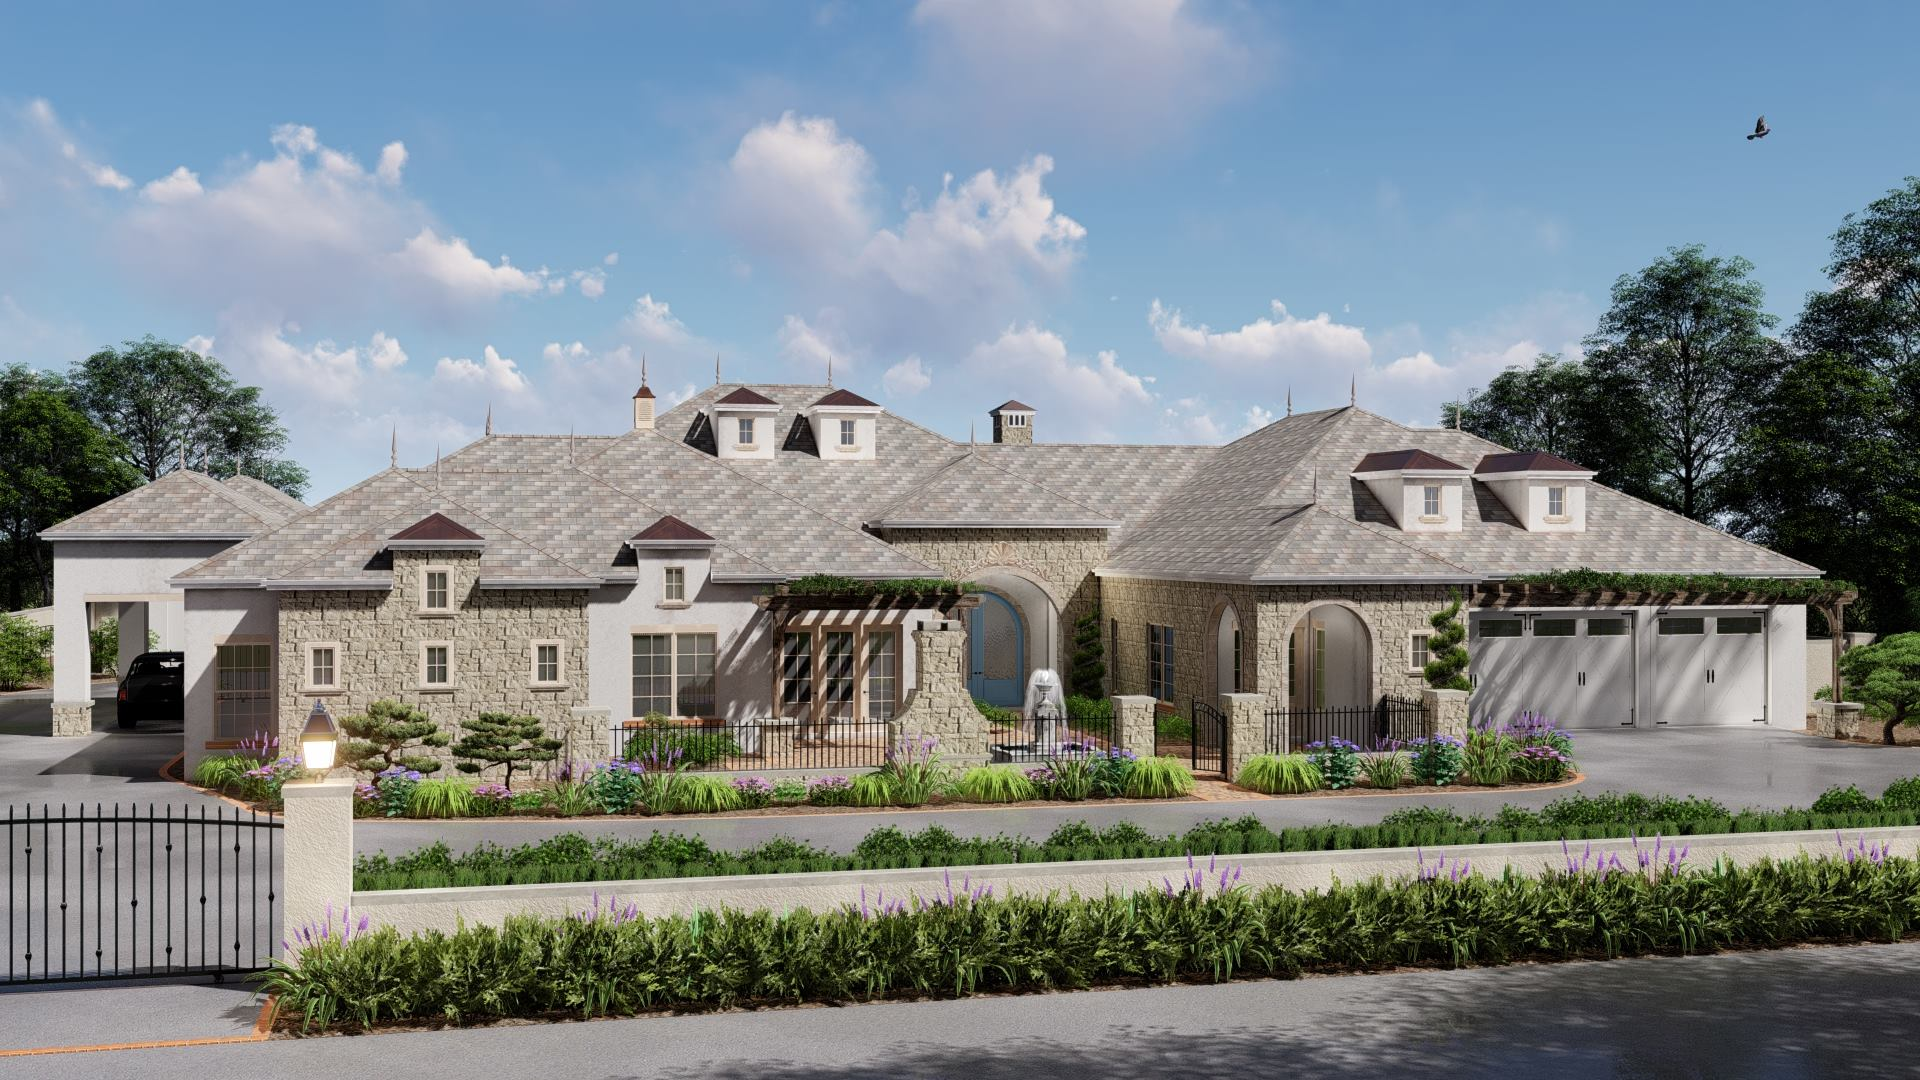 Modern French Farmhouse Exterior Modern French Farm Coming Summer 2019 Integrity Luxury Homes